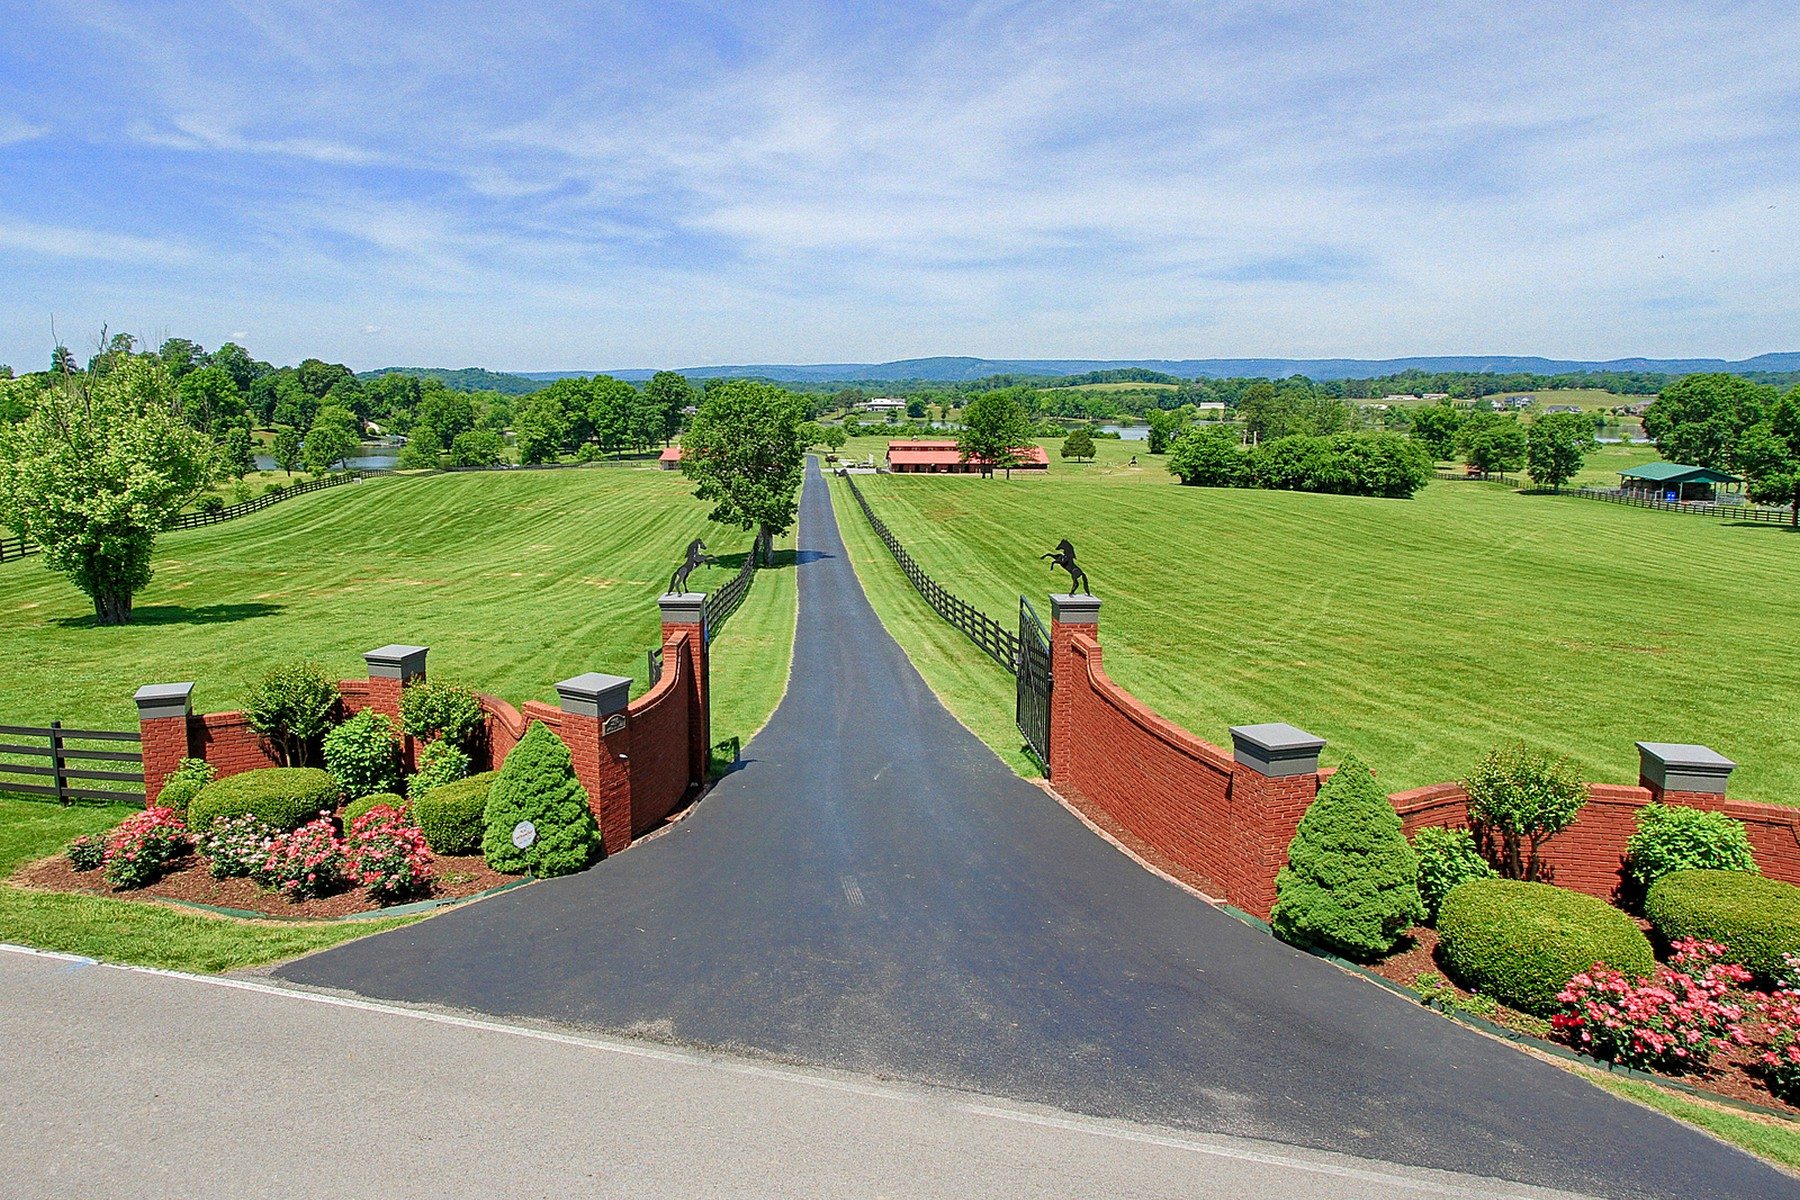 独户住宅 为 销售 在 Exquisite Equestrian Farm on the banks of Lake Chickamauga 3190 New Union Road Dayton, 田纳西州 37321 美国